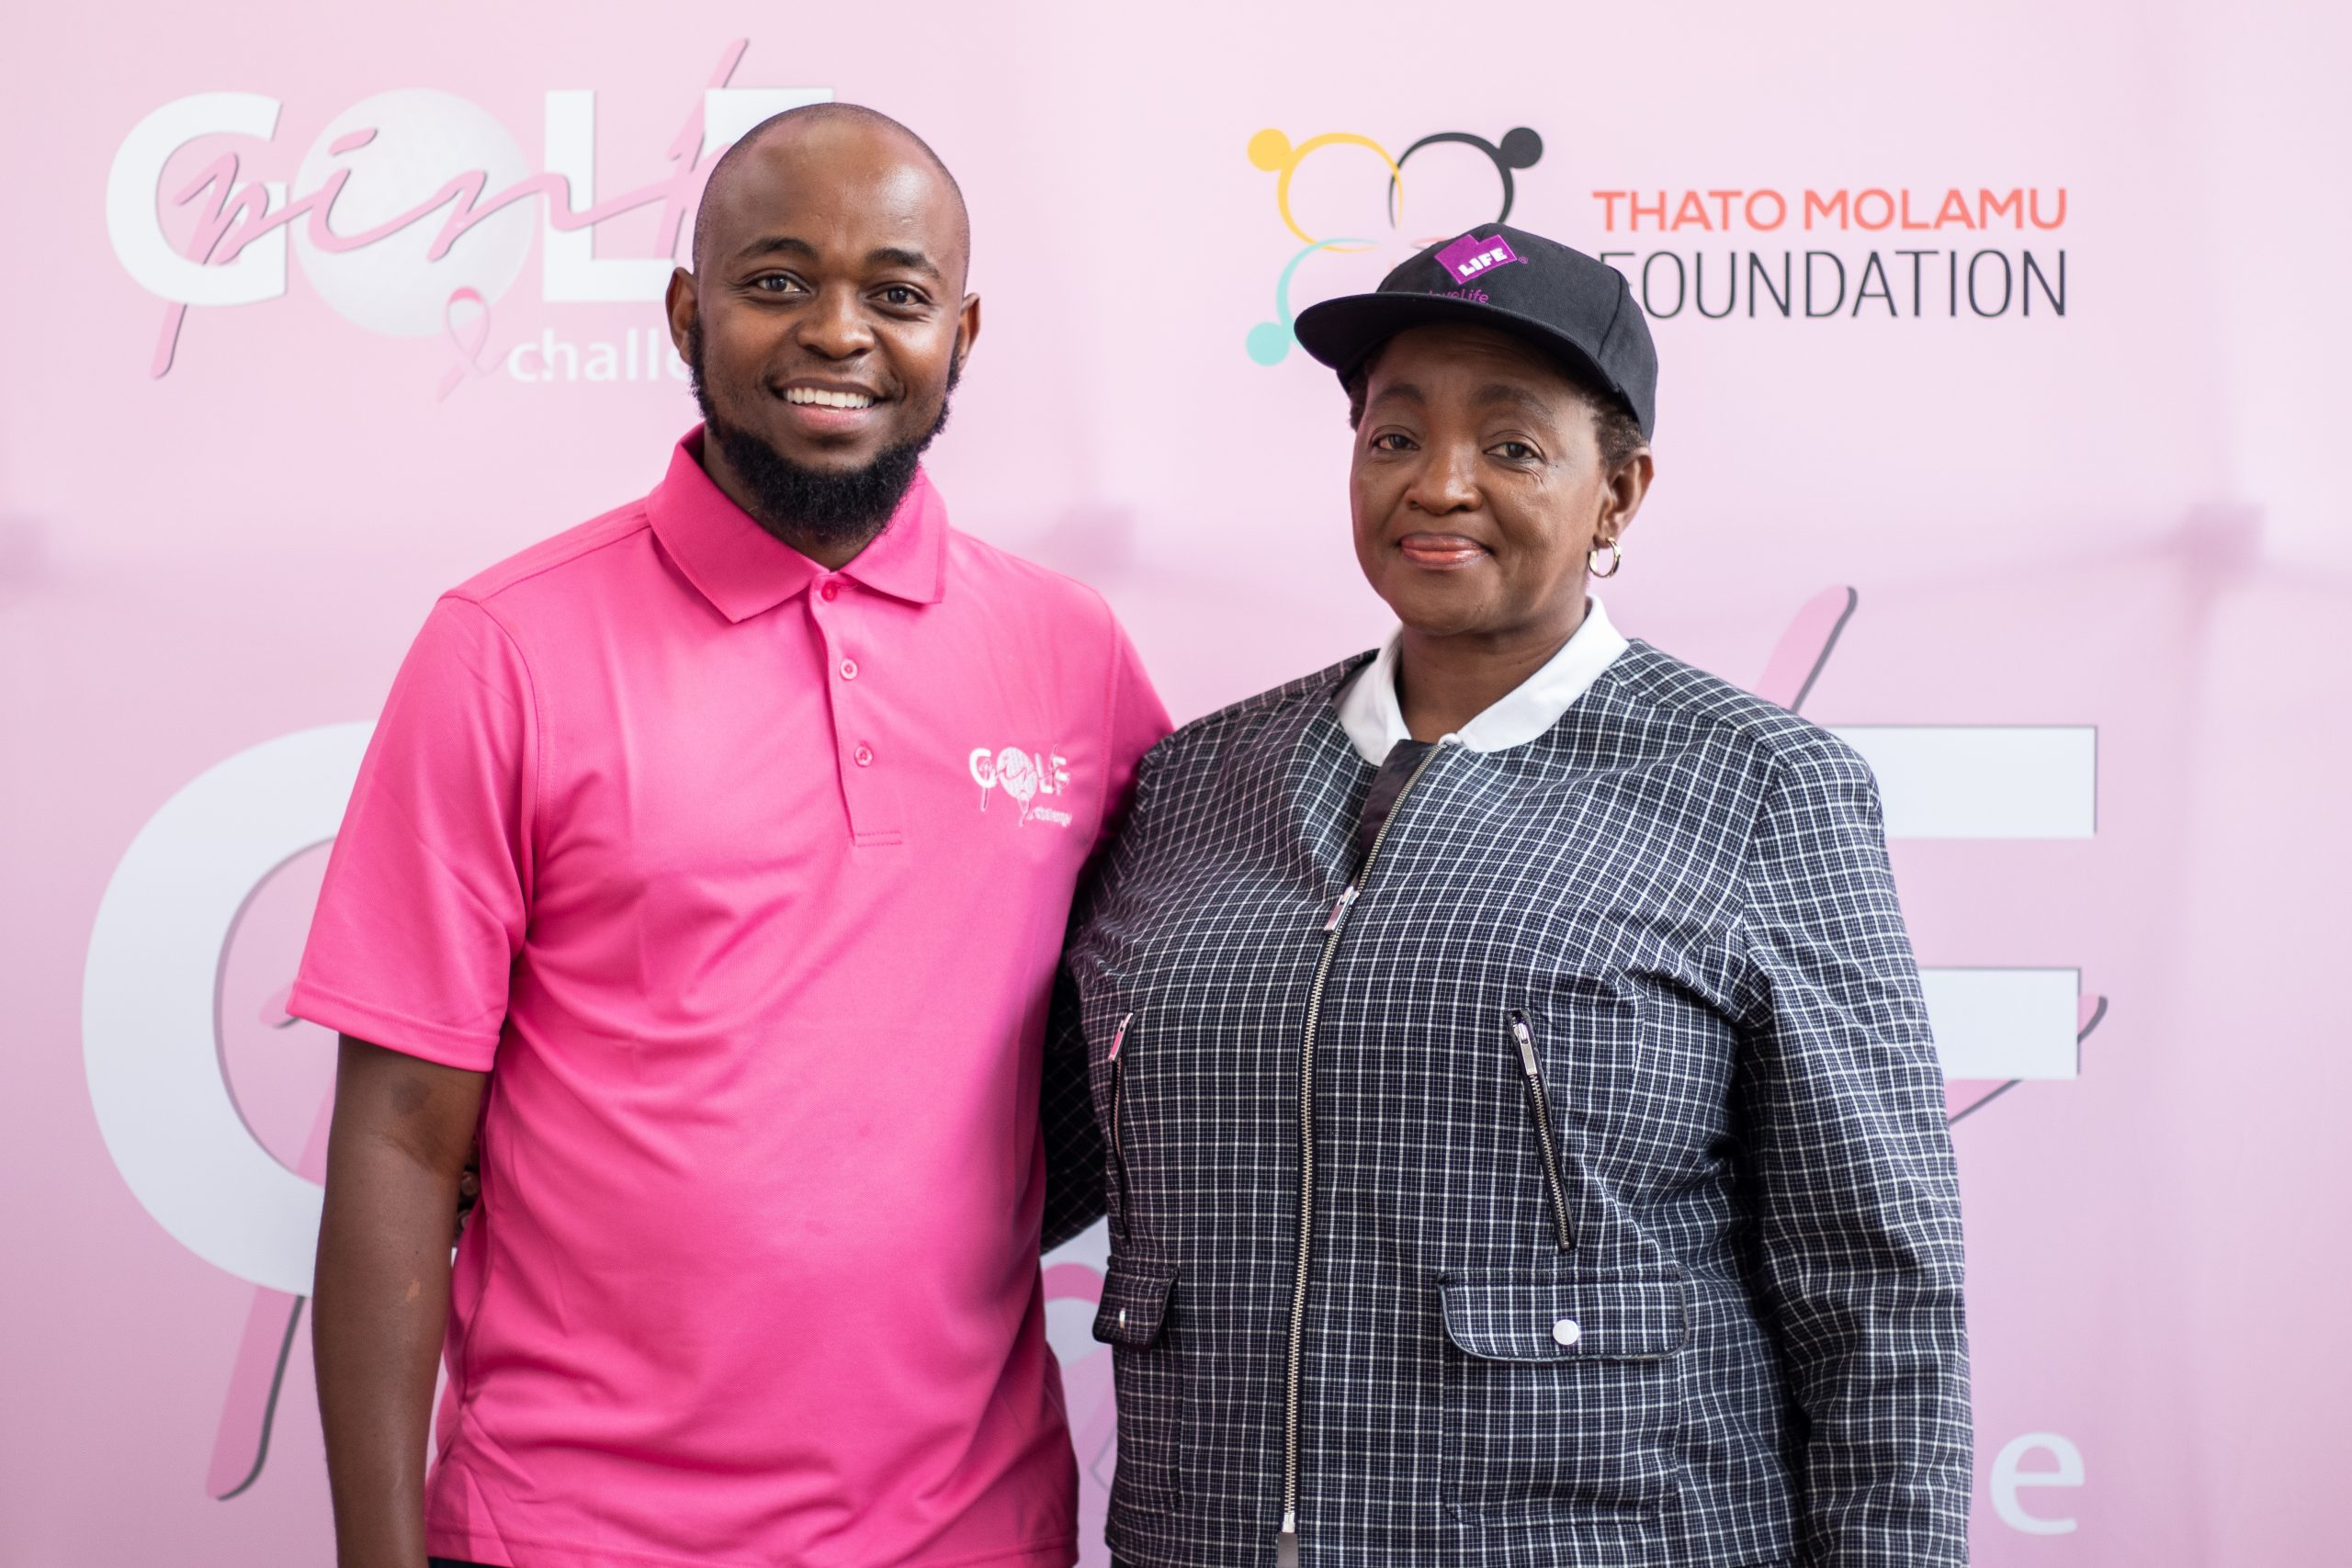 Thato Molamu Gathers Doctors And Celebrities To Help Cancer Patients